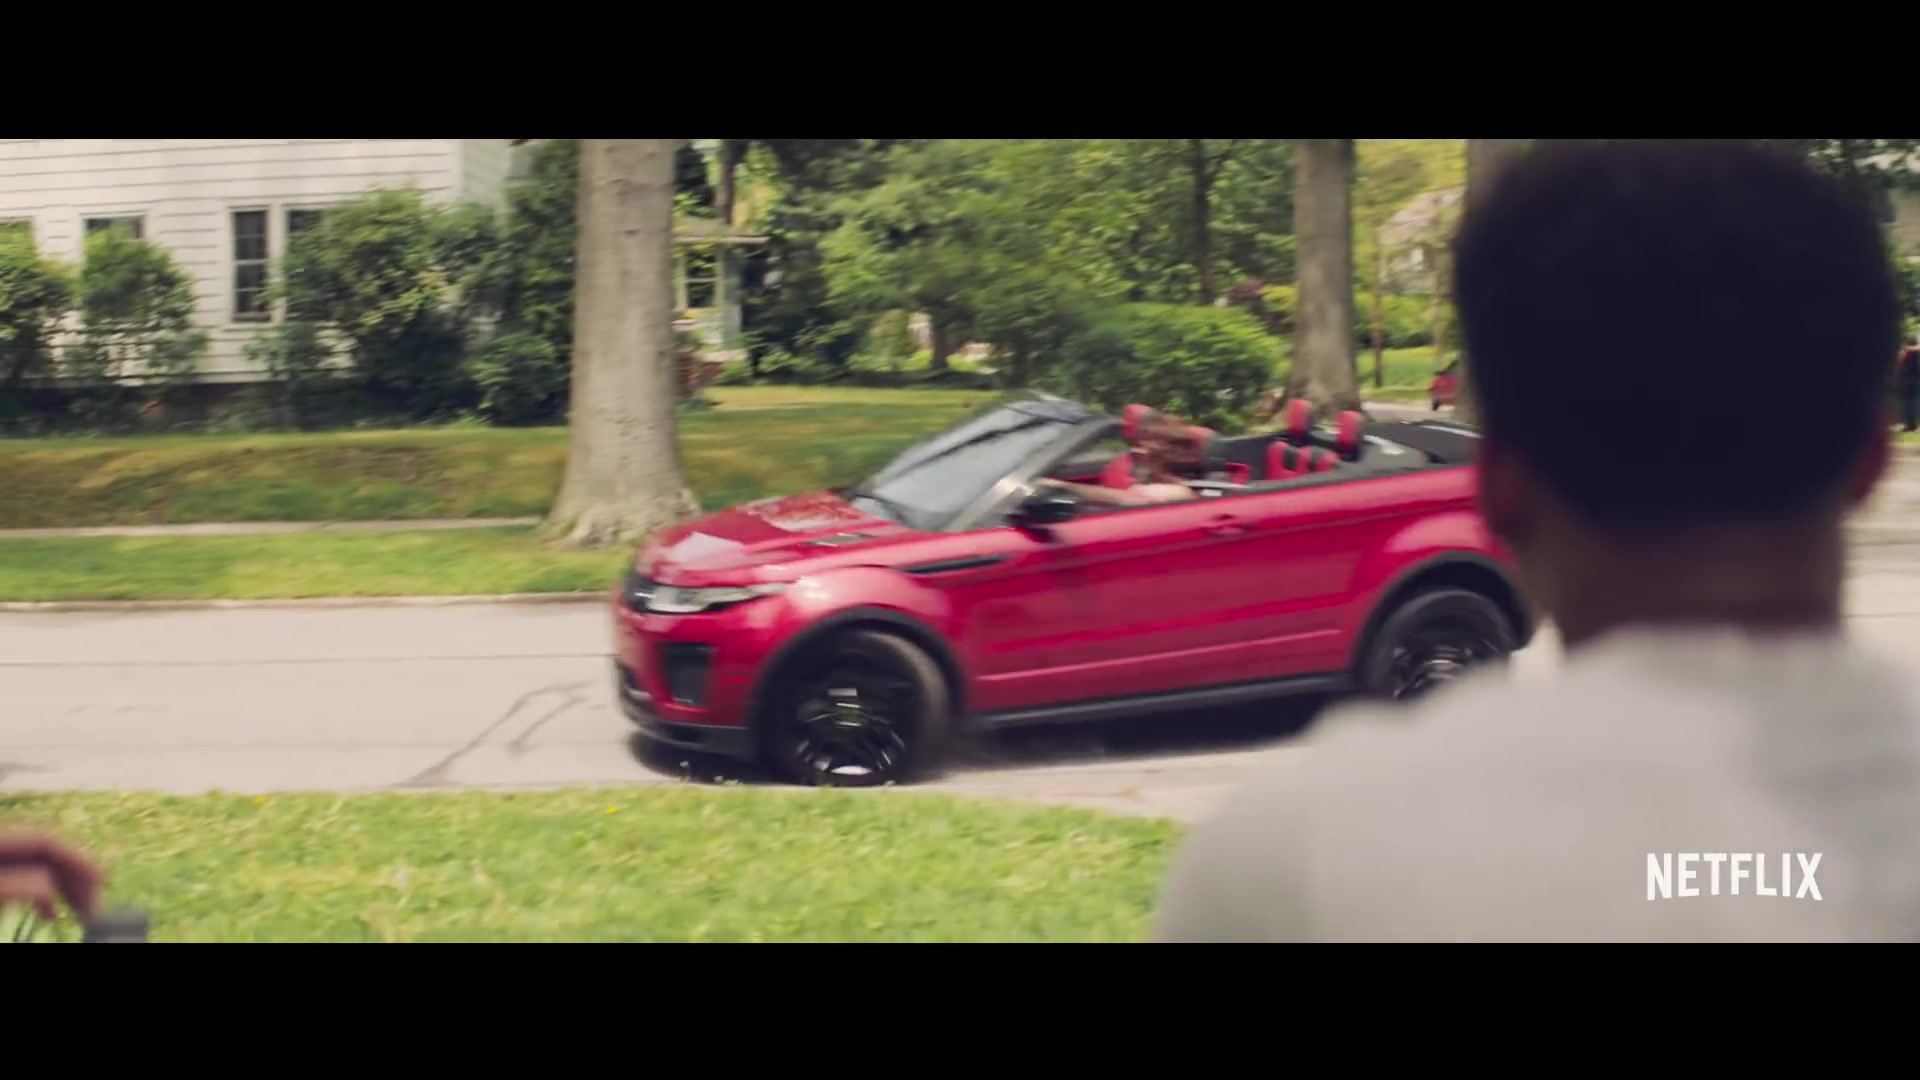 Range Rover Evoque Convertible Red Car In The Last Summer